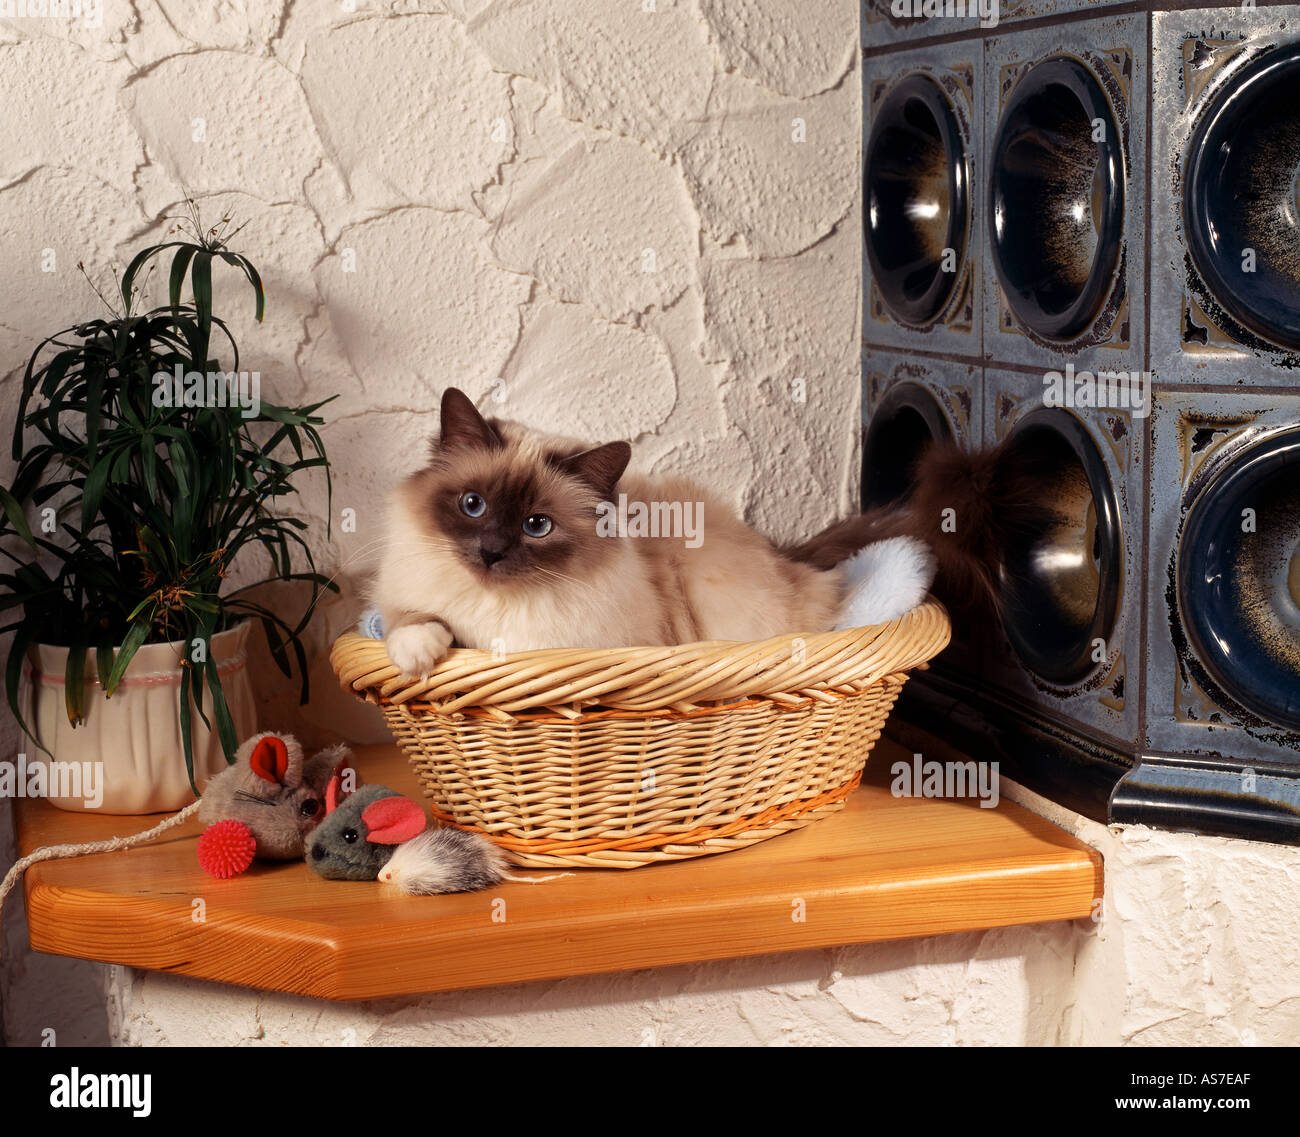 Sacred cat of Burma - lying in basket next to tiled stove - Stock Image